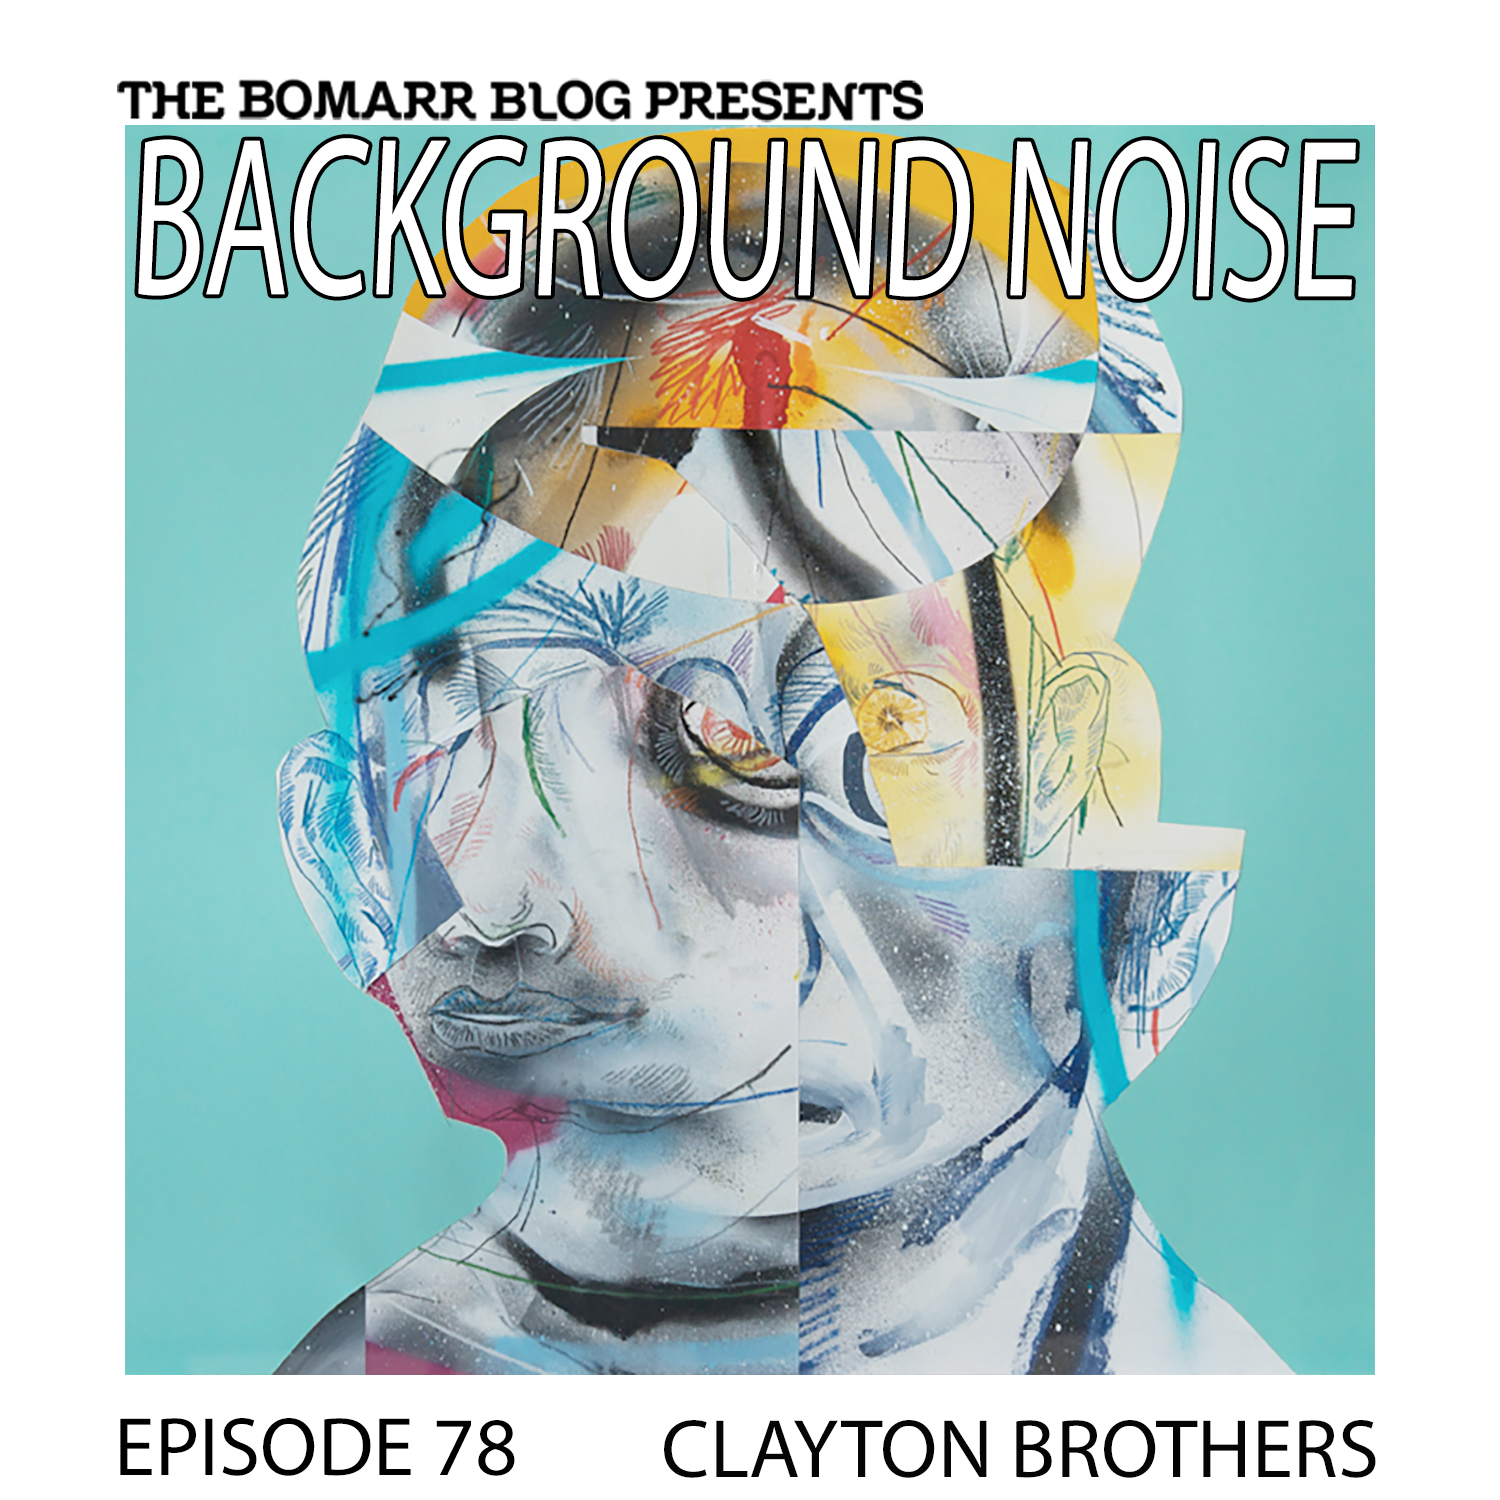 THE BACKGROUND NOISE PODCAST SERIES FOCUSES ON THE MUSIC THAT ARTISTS LISTEN TO WHEN THEY WORK, WHAT MUSIC INSPIRES THEM, OR JUST MUSIC THEY LIKE. THIS WEEK, IN EPISODE 78, THE FOCUS IS ON CLAYTON BROTHERS.